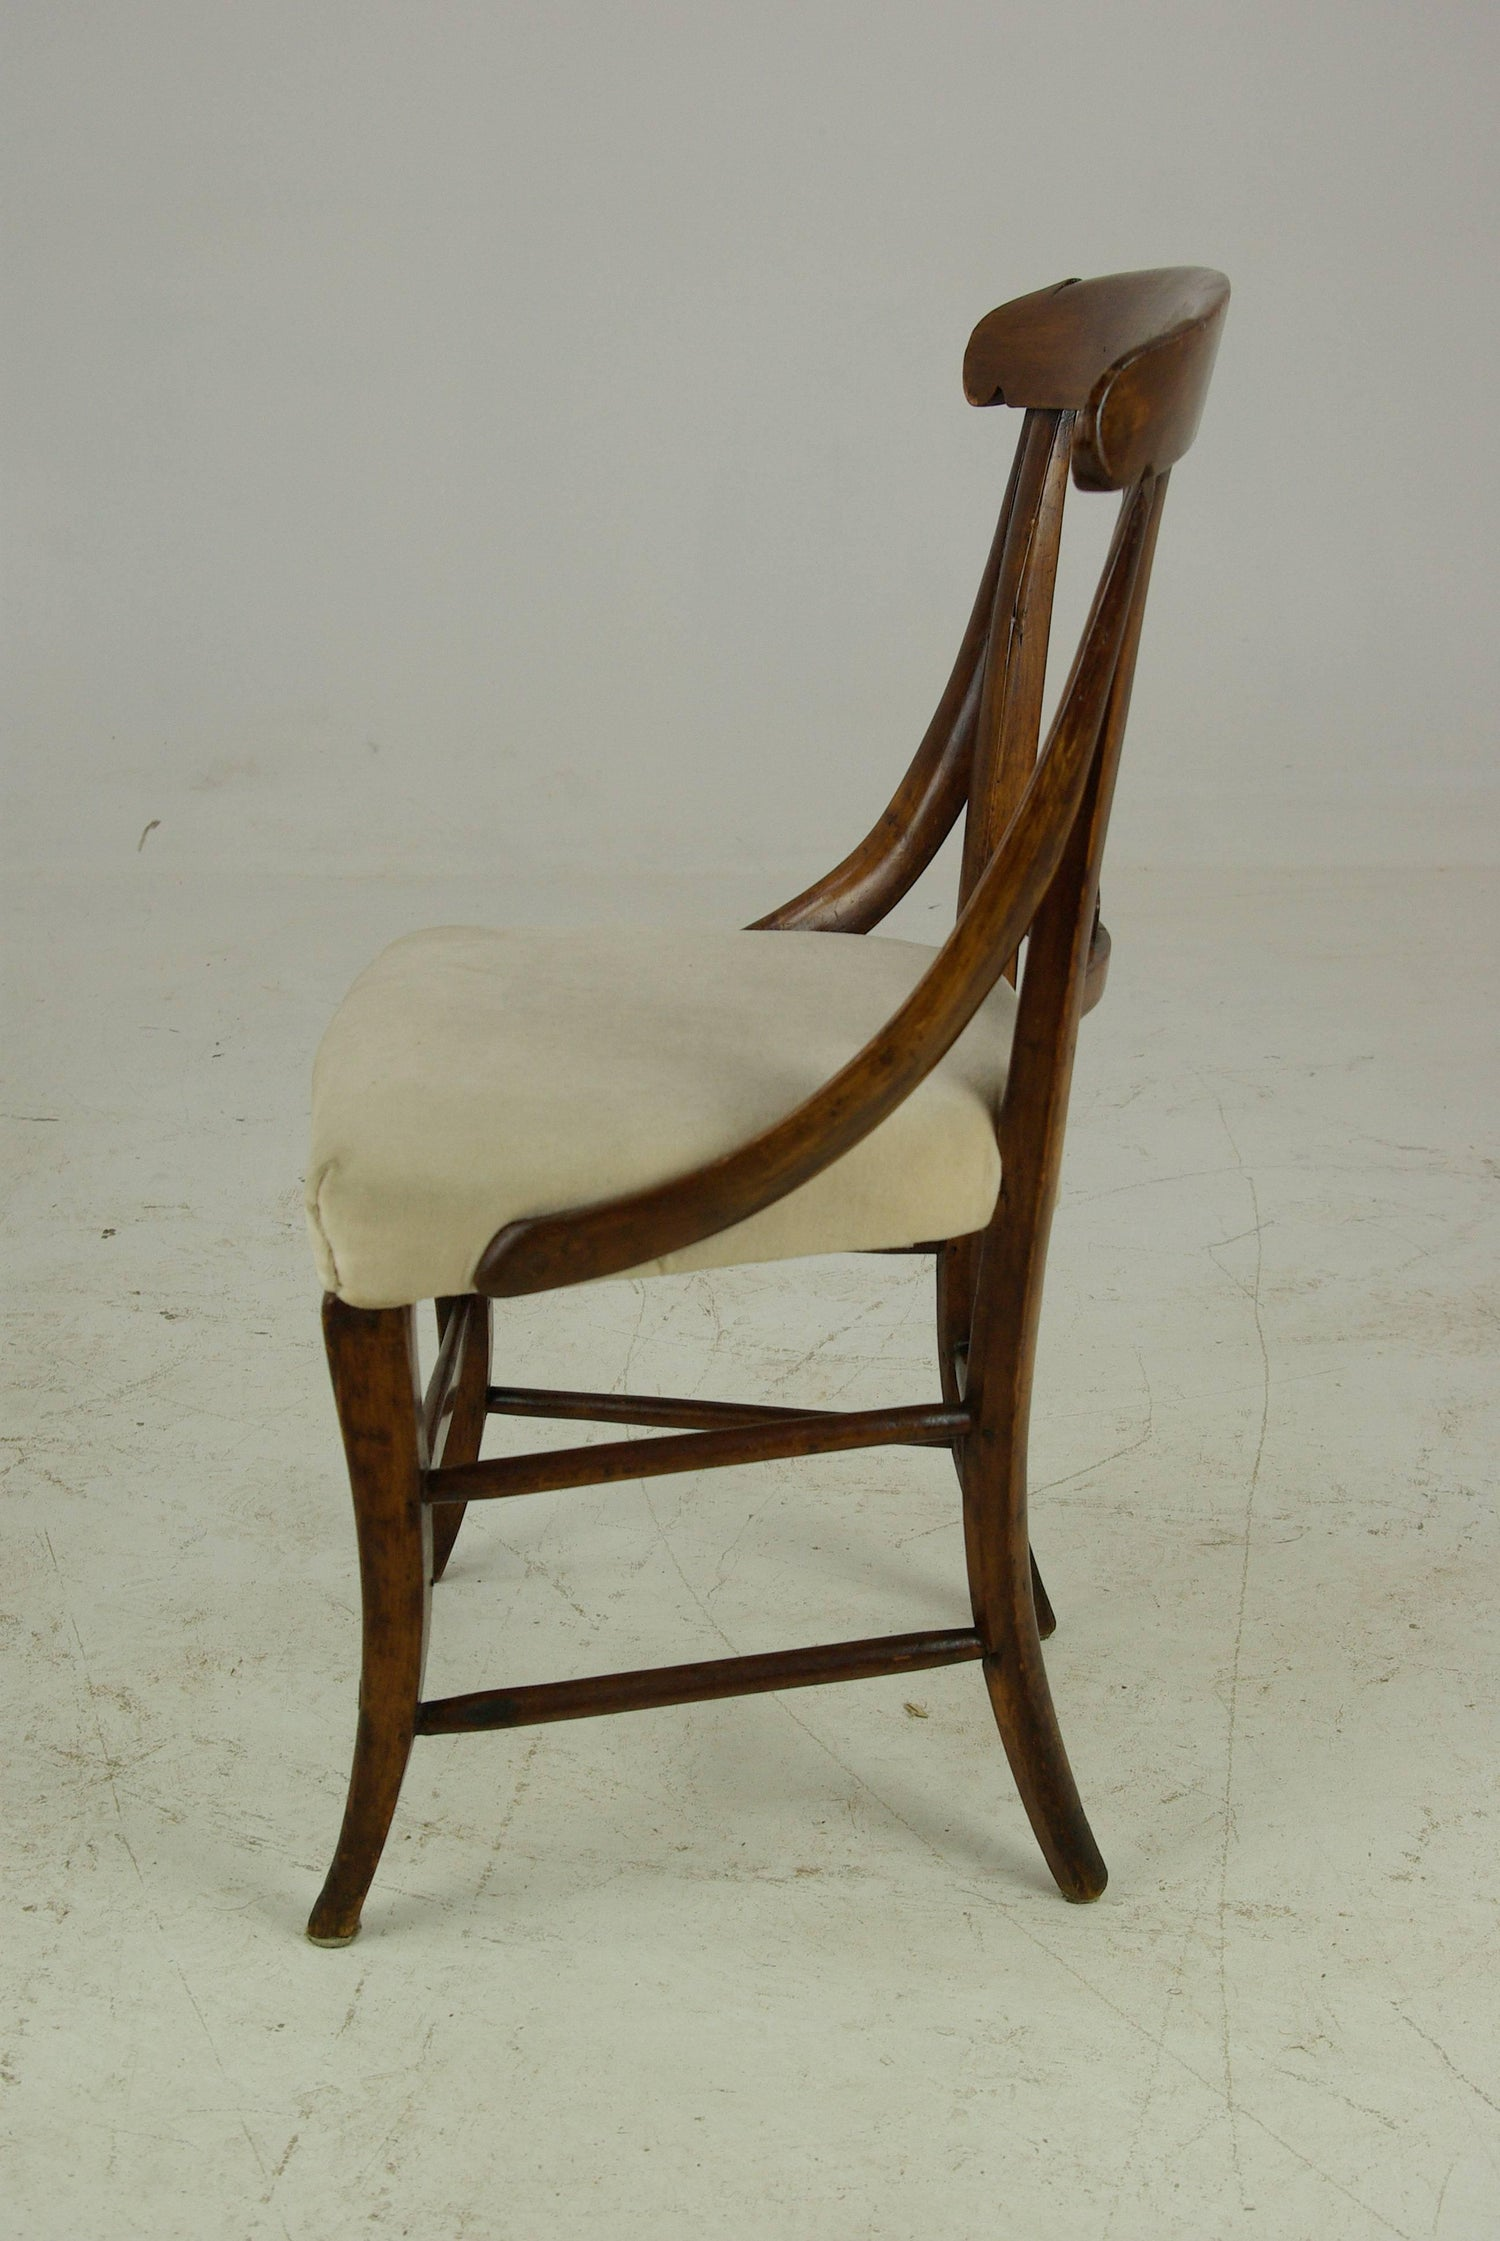 Antique Dolls Chair, Childs Chair, Victorian, Sycamore, Scotland 1880 For  Sale at 1stdibs - Antique Dolls Chair, Childs Chair, Victorian, Sycamore, Scotland